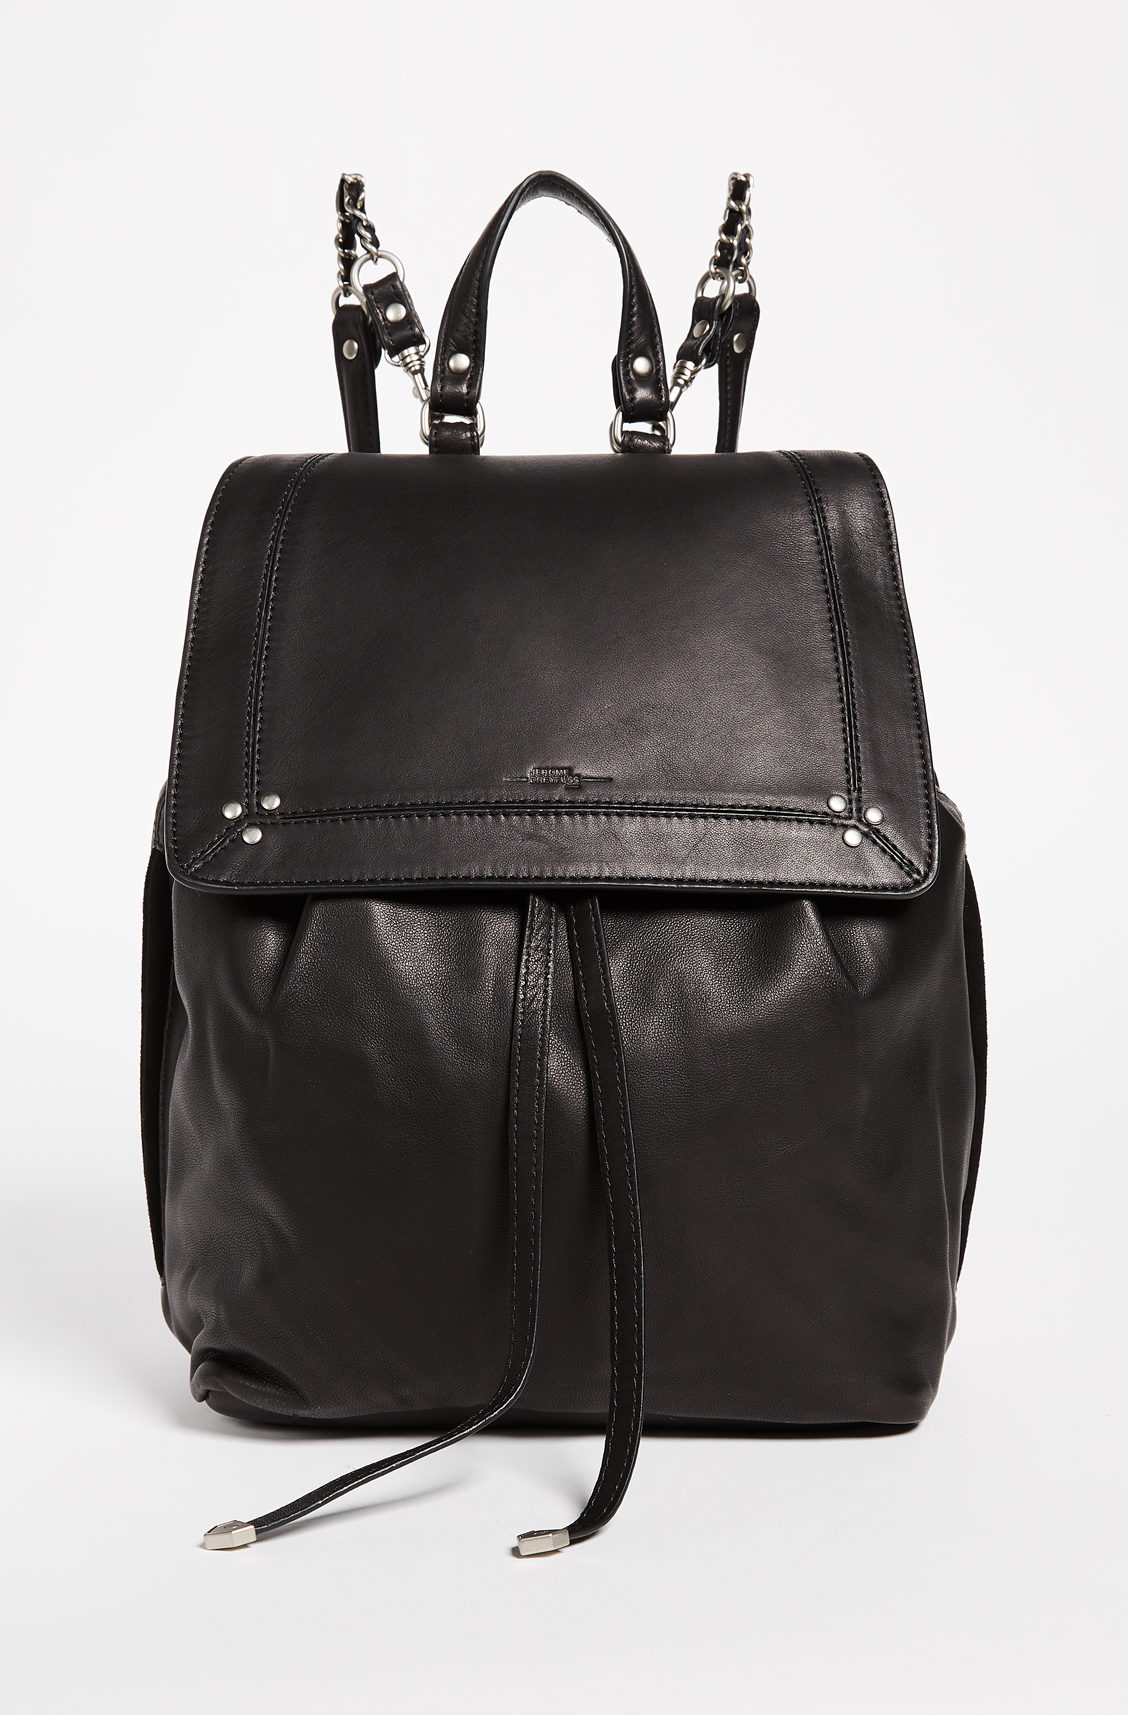 jerome dreyfuss backpack